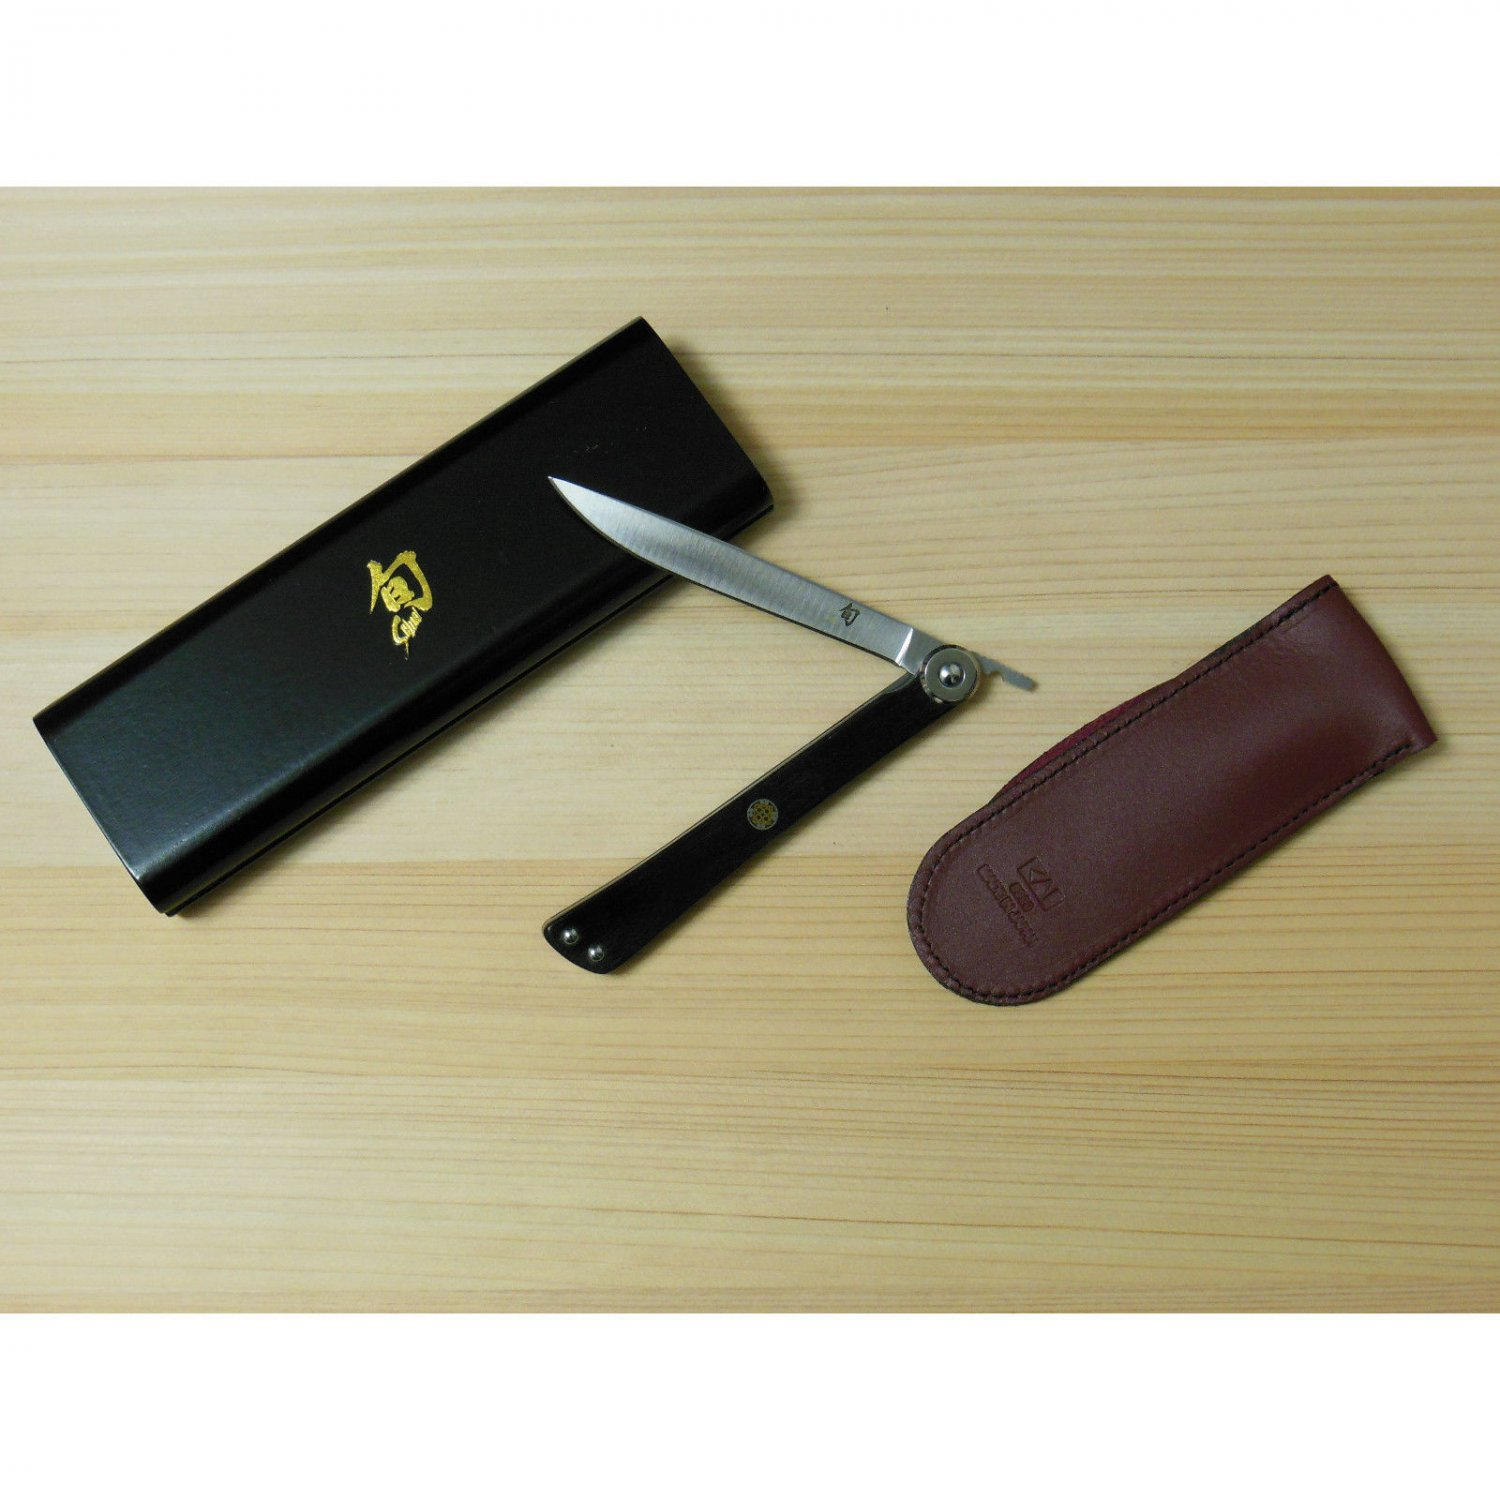 Shun Higo Nokami Gentleman's Personal Folding Steak/Pocket Knife 5900